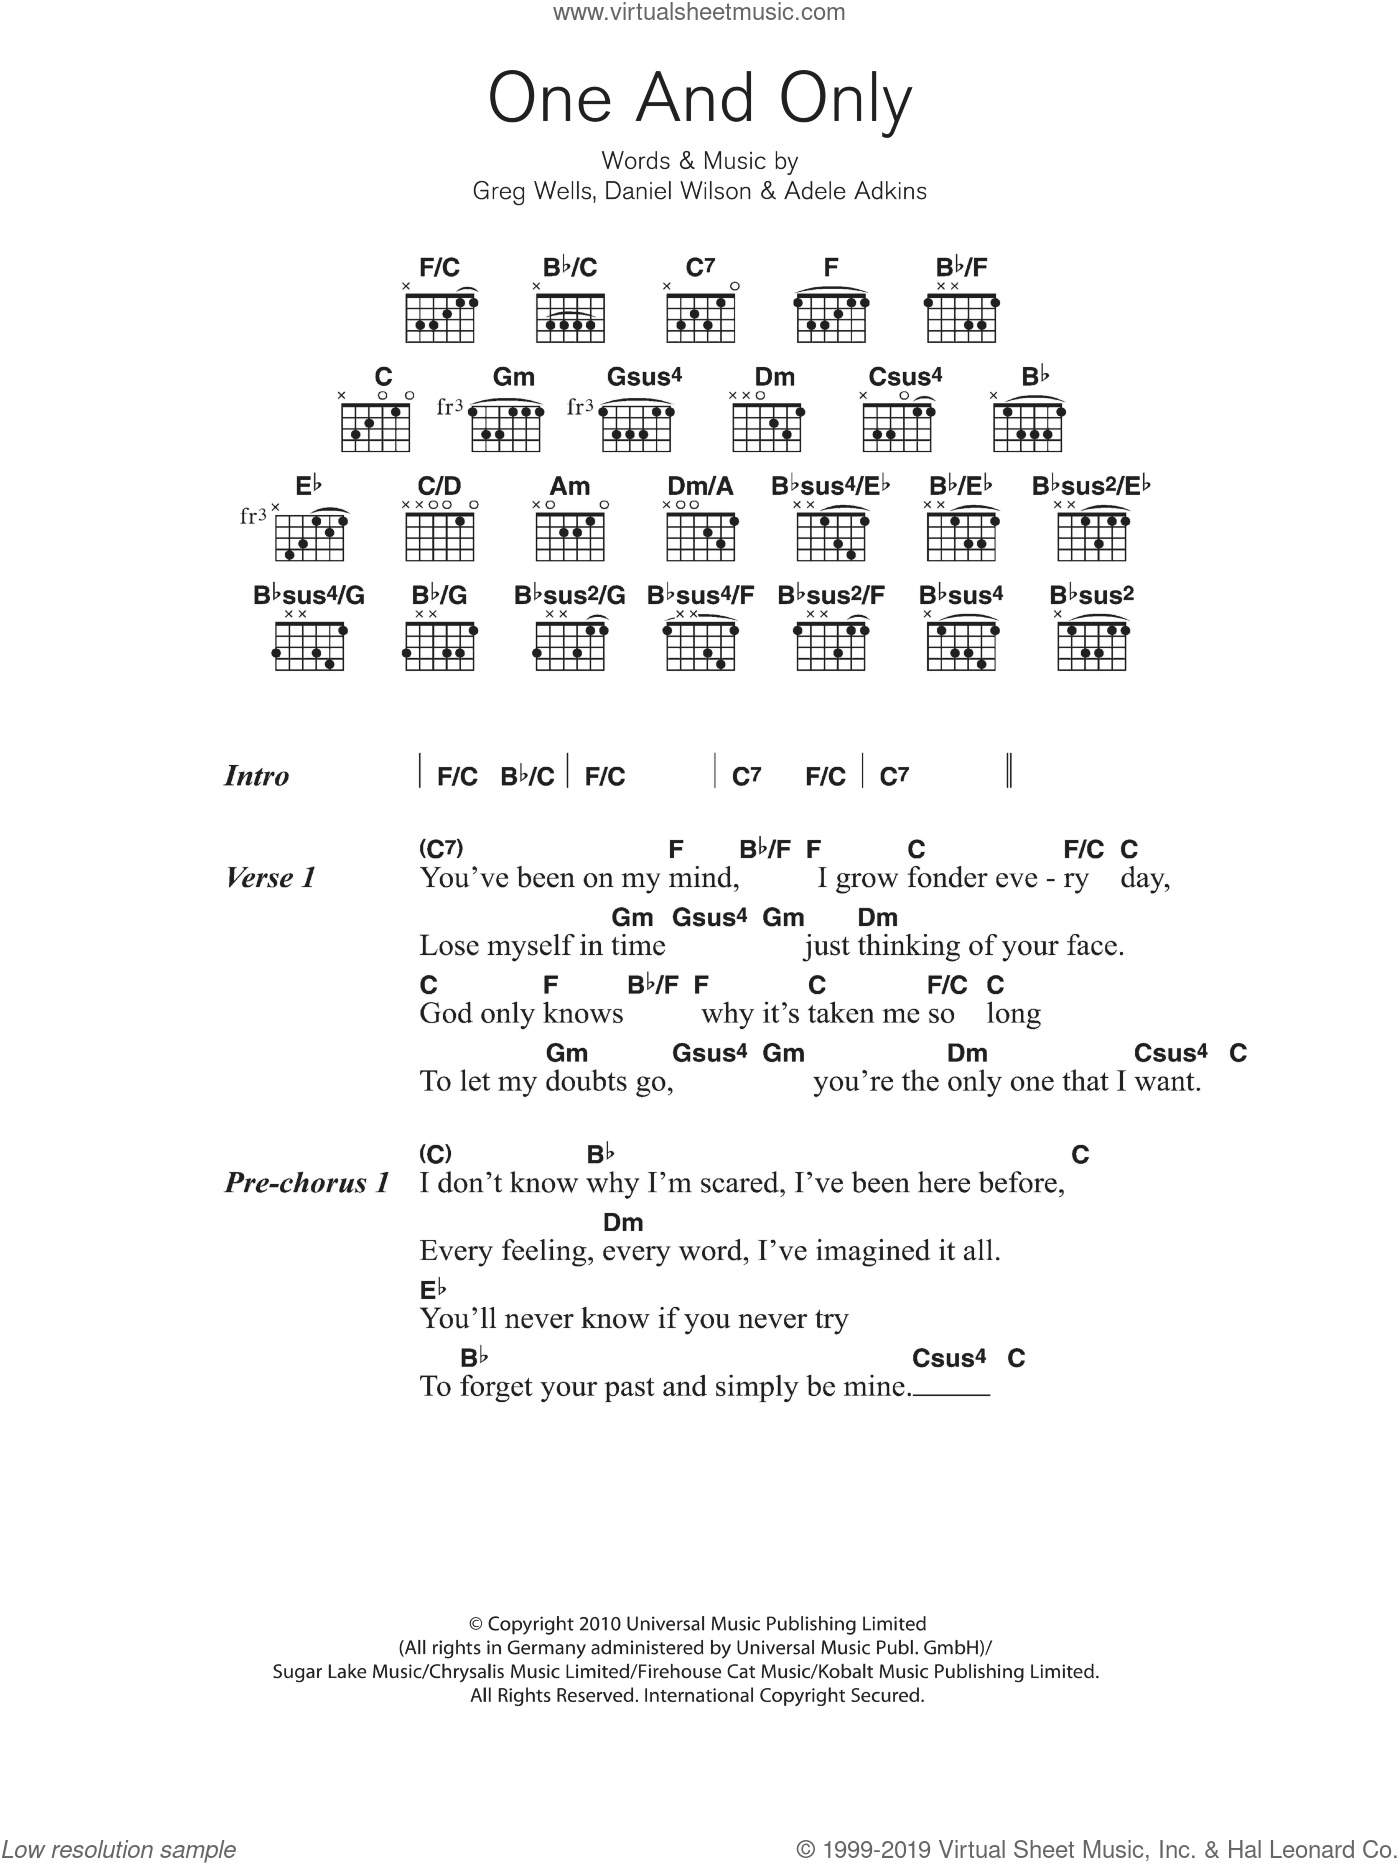 Adele - One And Only sheet music for guitar (chords) [PDF]